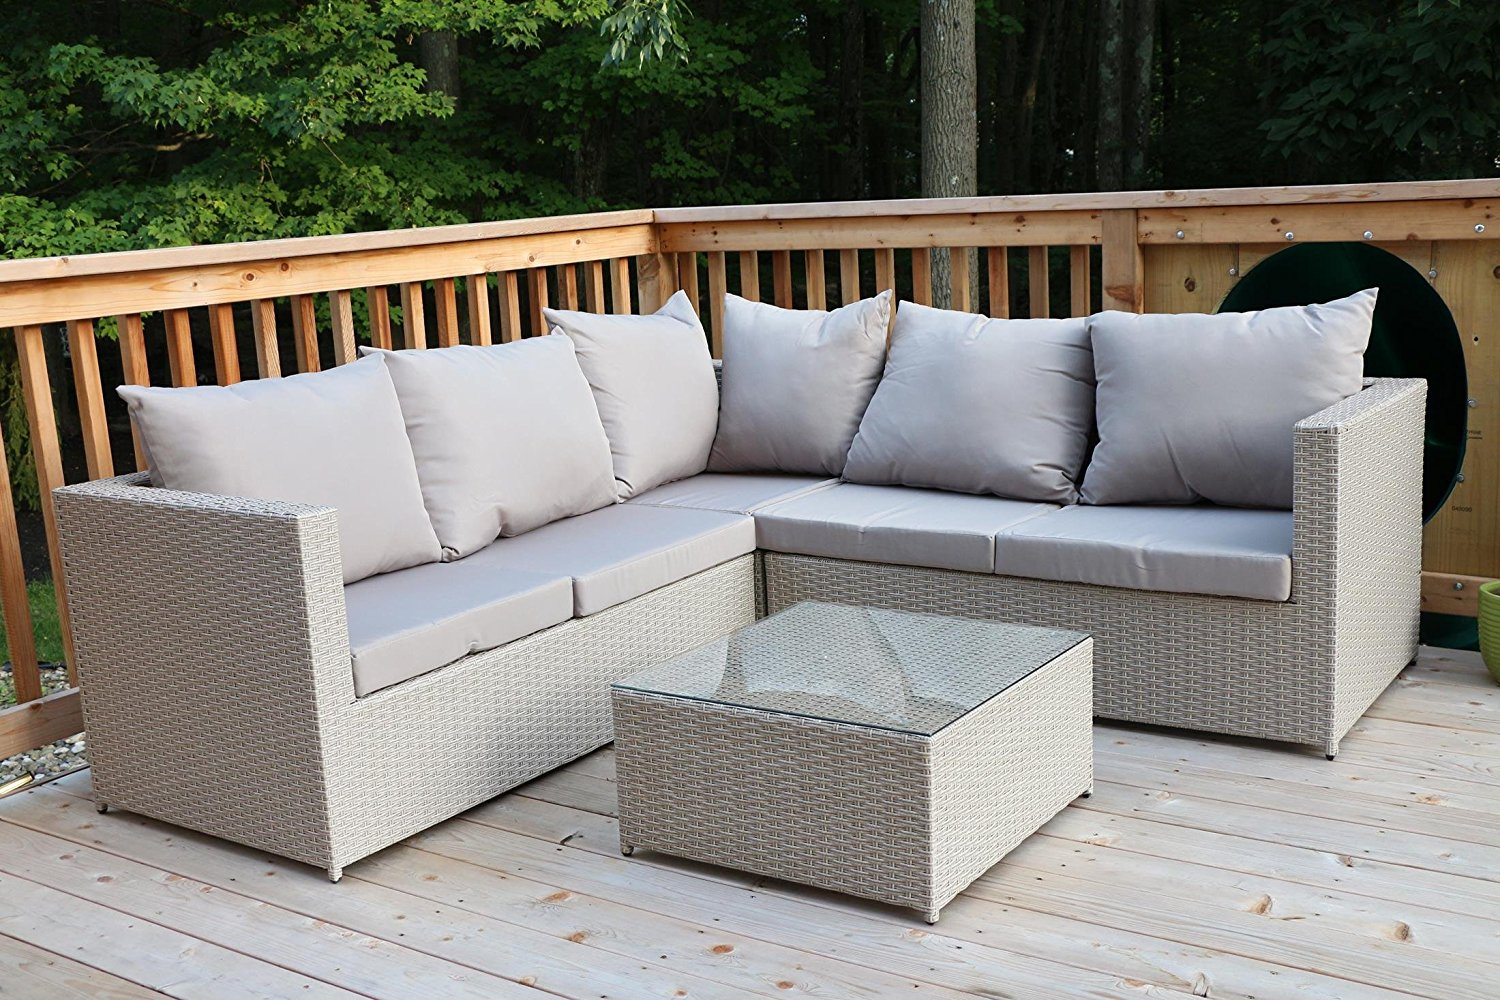 Large 4 Pc Modern Beige Rattan Wiker Sectional Sofa Set ...